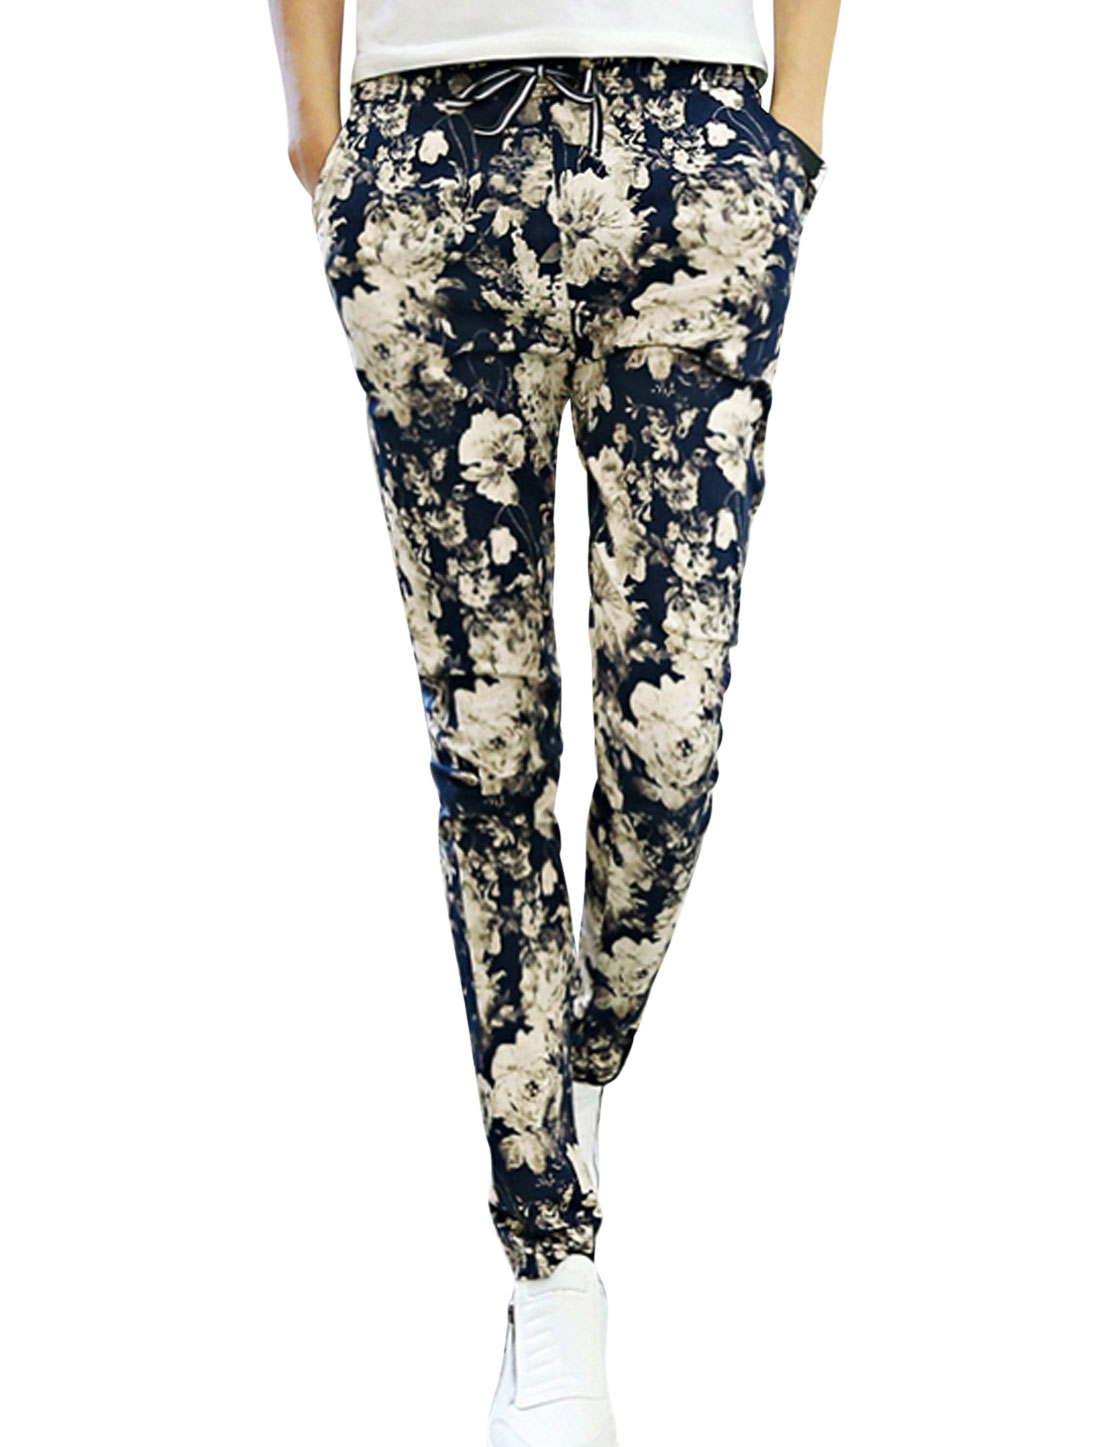 Man Navy Blue Beige Mid Rise Floral Prints Elastic Waist Drawstring Tapered Pants W28